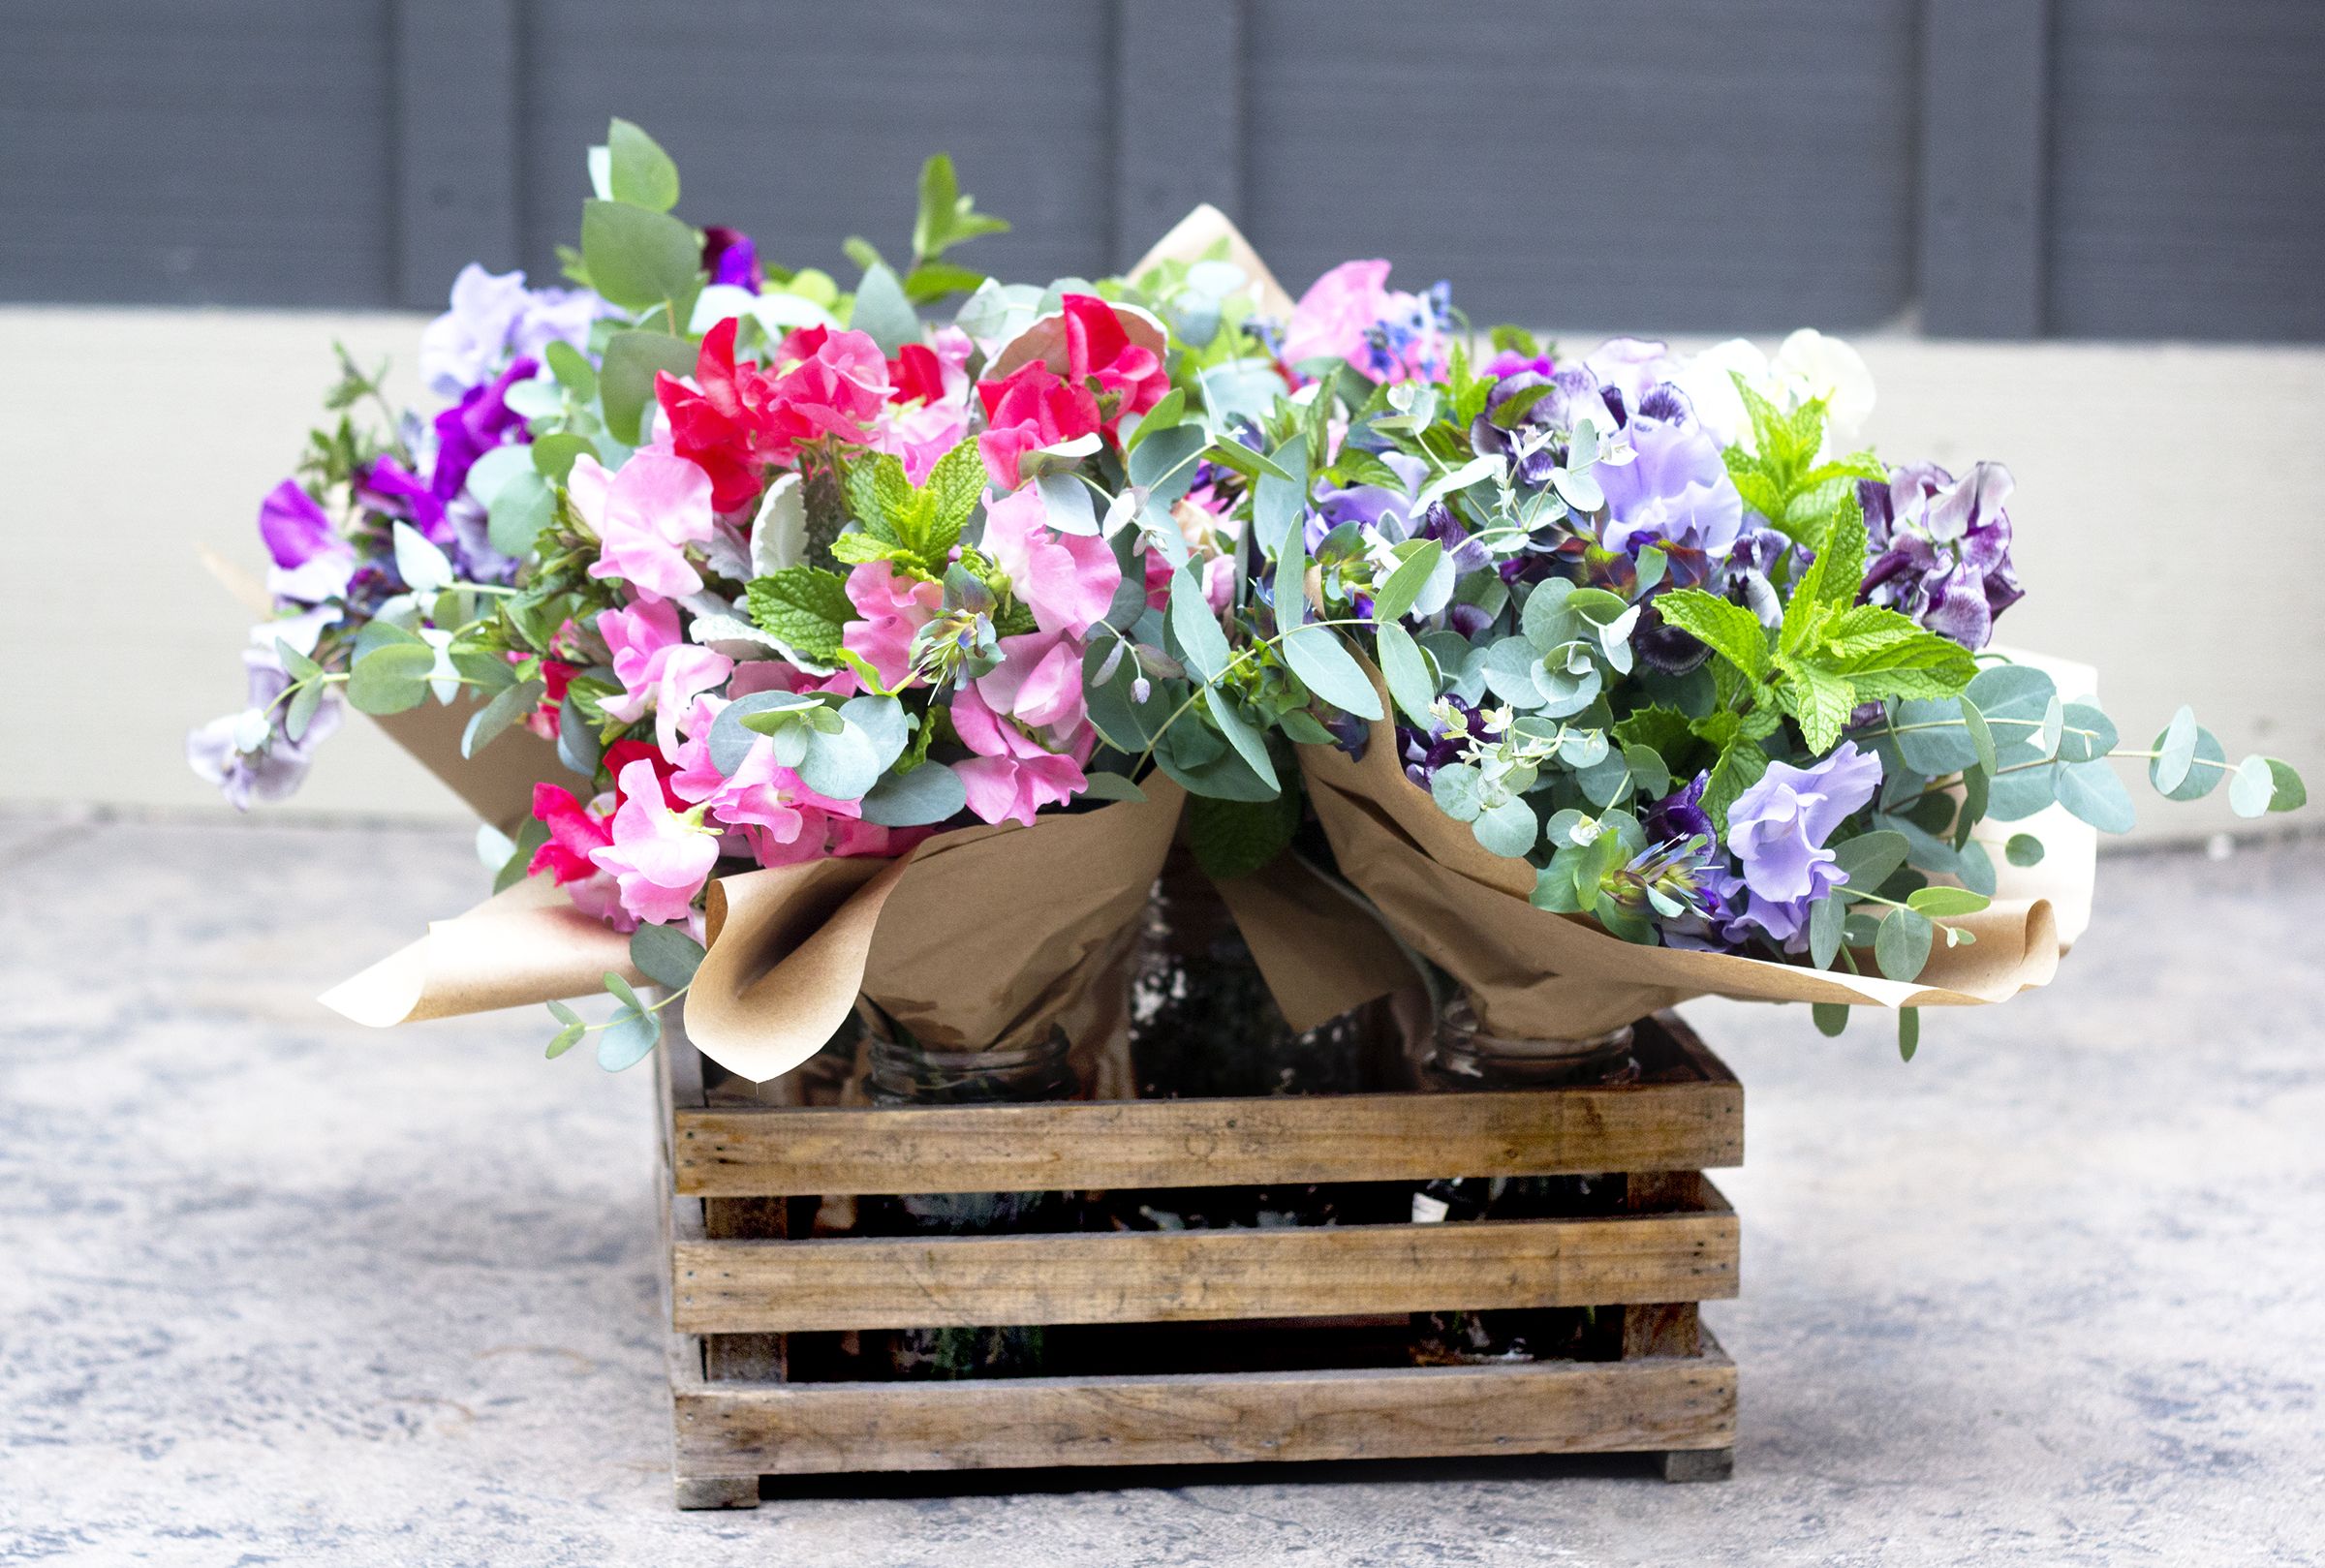 Sweet Peas & Herbs - make absolutely beautiful & fragrant bouquets that are unique & special! Are you looking for something out of the ordinary, not your 'run of the mill' grocery store bouquet?? We can help you!